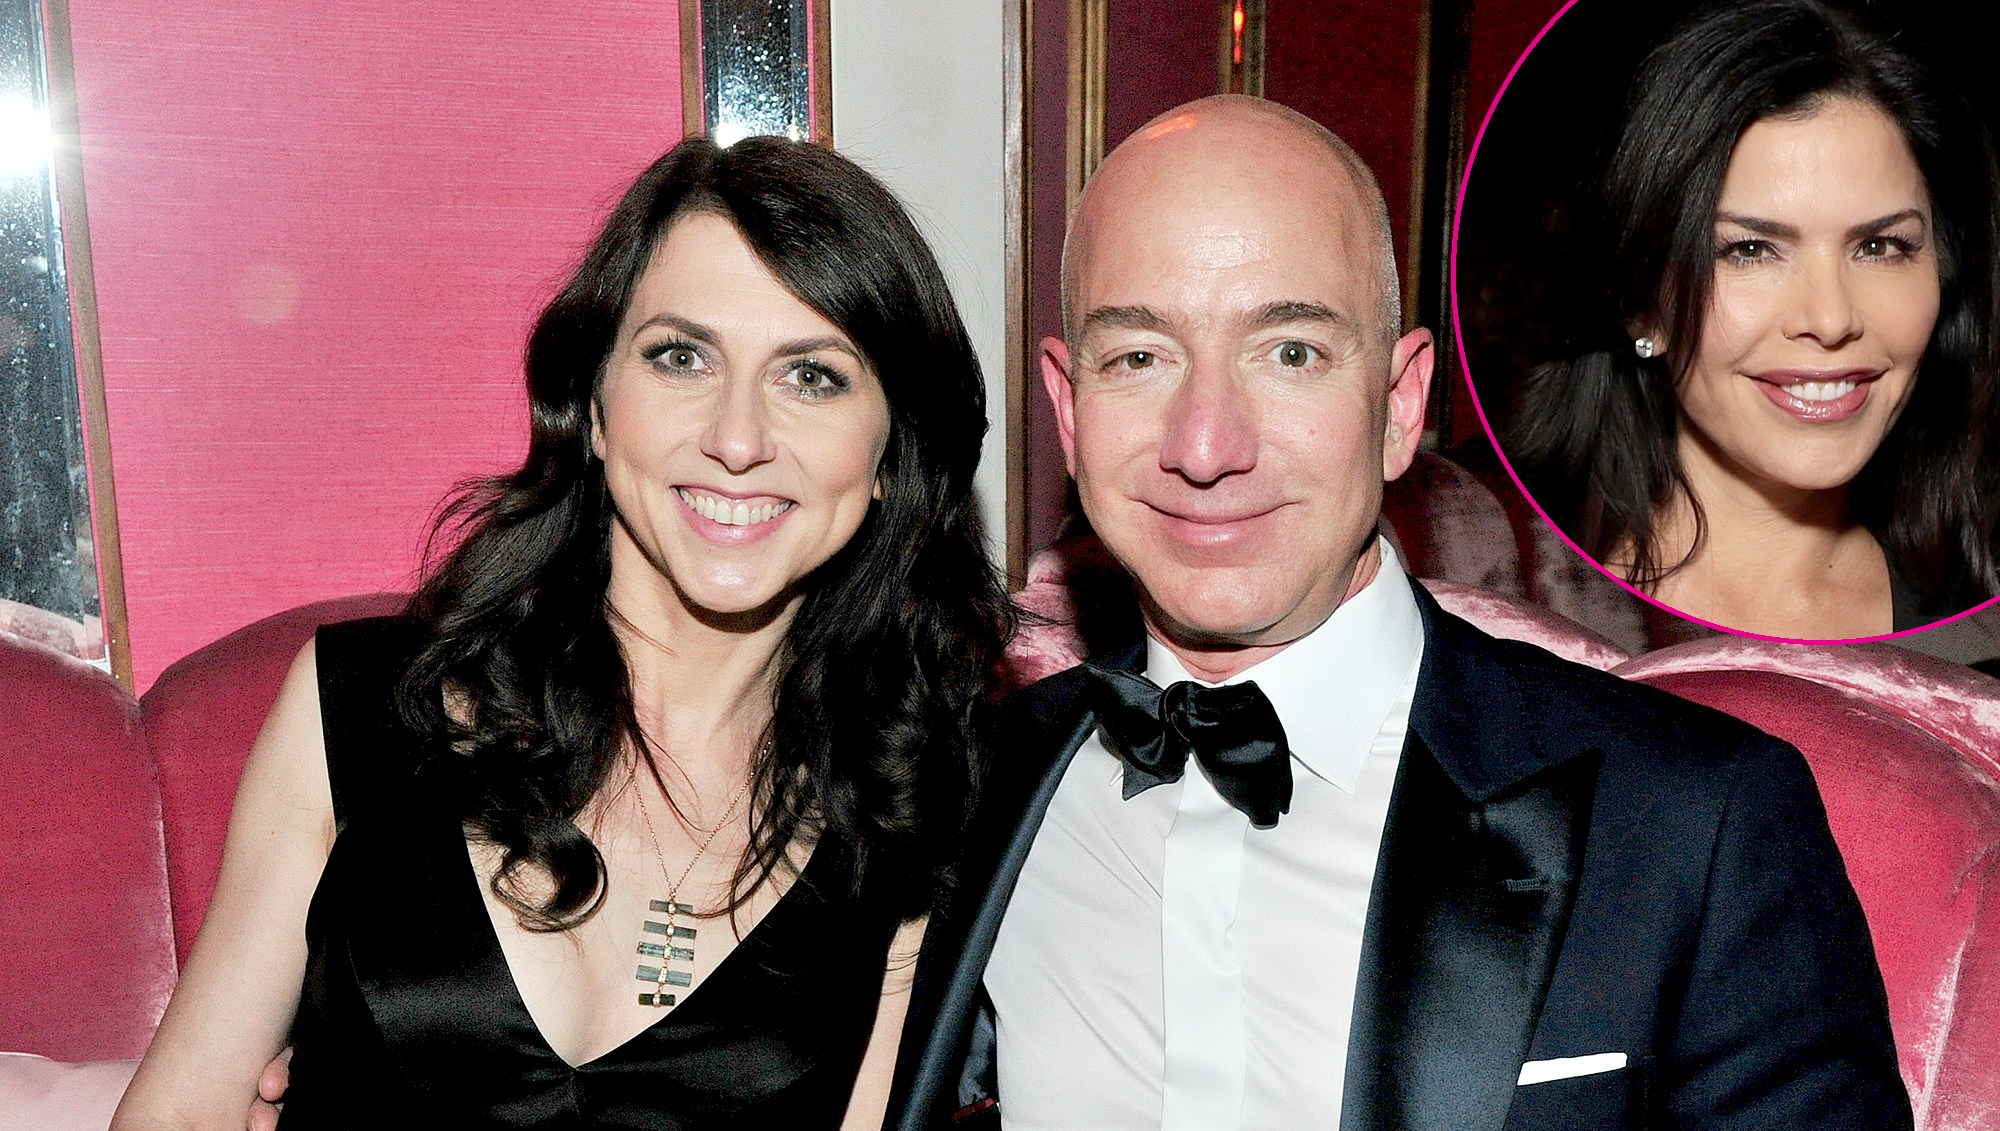 Jeff Bezos Caught Cheating On Wife Mackenzie With Lauren Sanchez